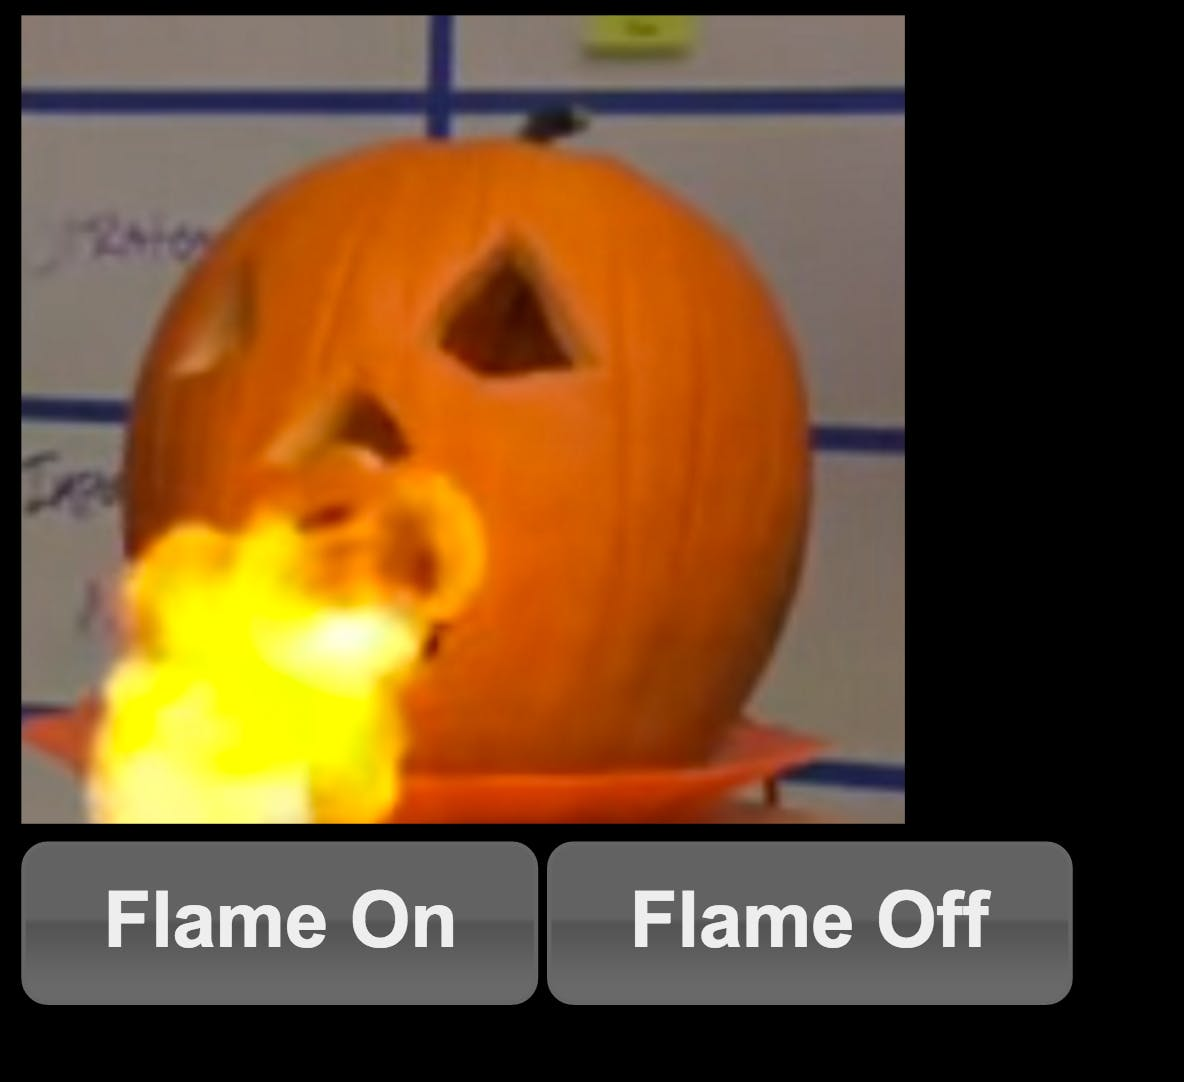 Pumpkin Mobile Web-App. When on the pumpkin showed a flame